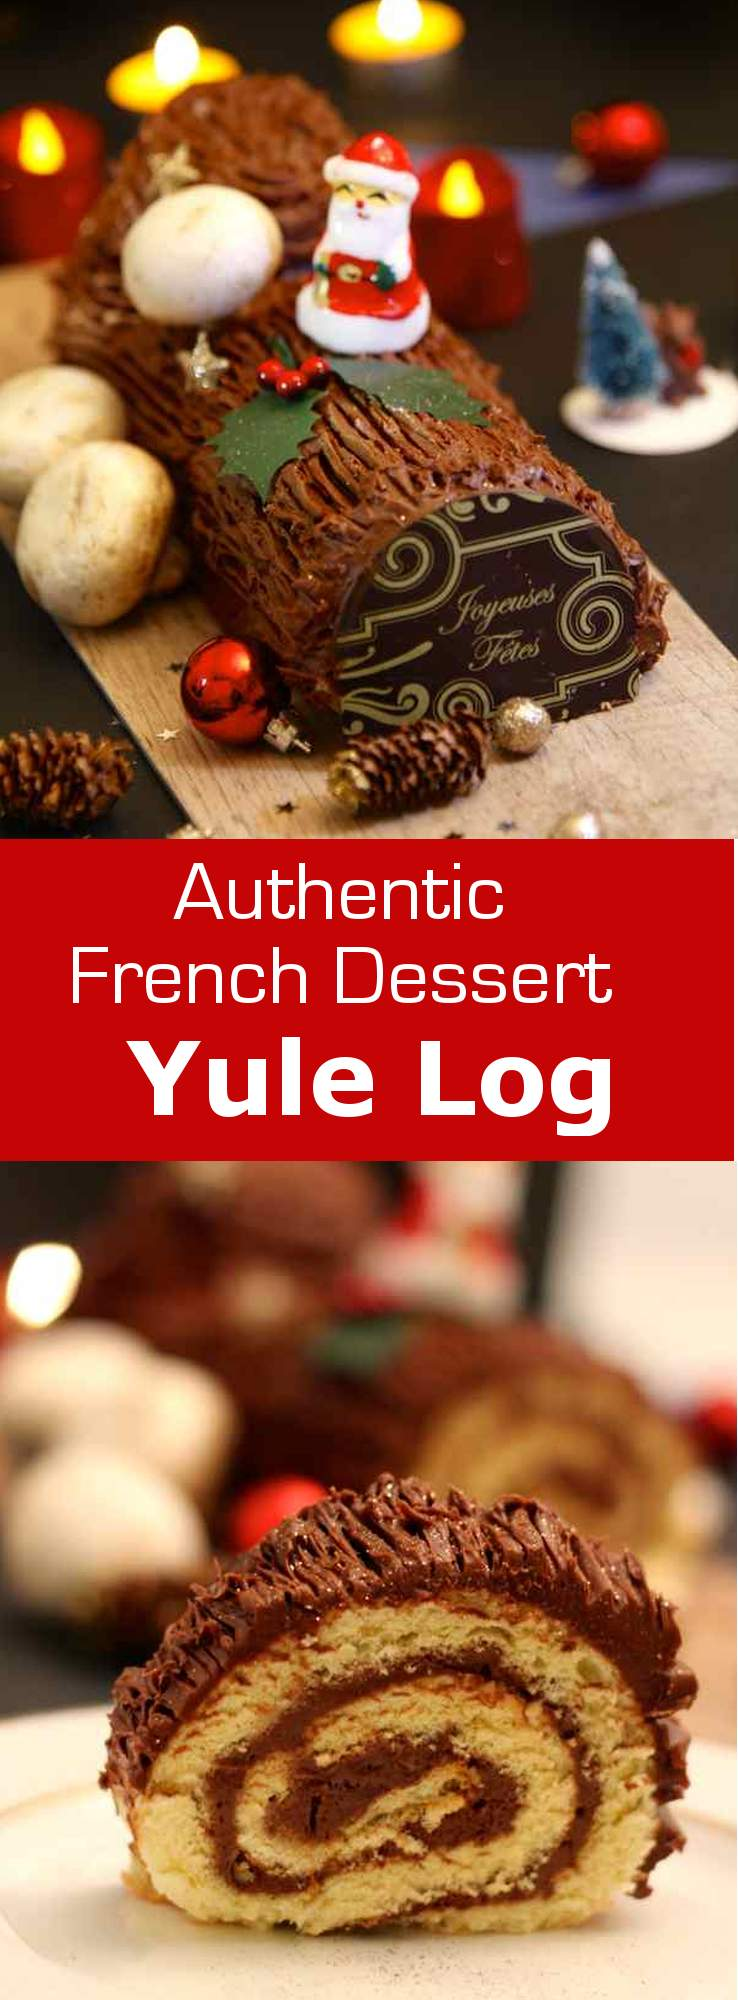 Christmas Yule Log Cake.Chocolate Yule Log Buche De Noel Au Chocolat